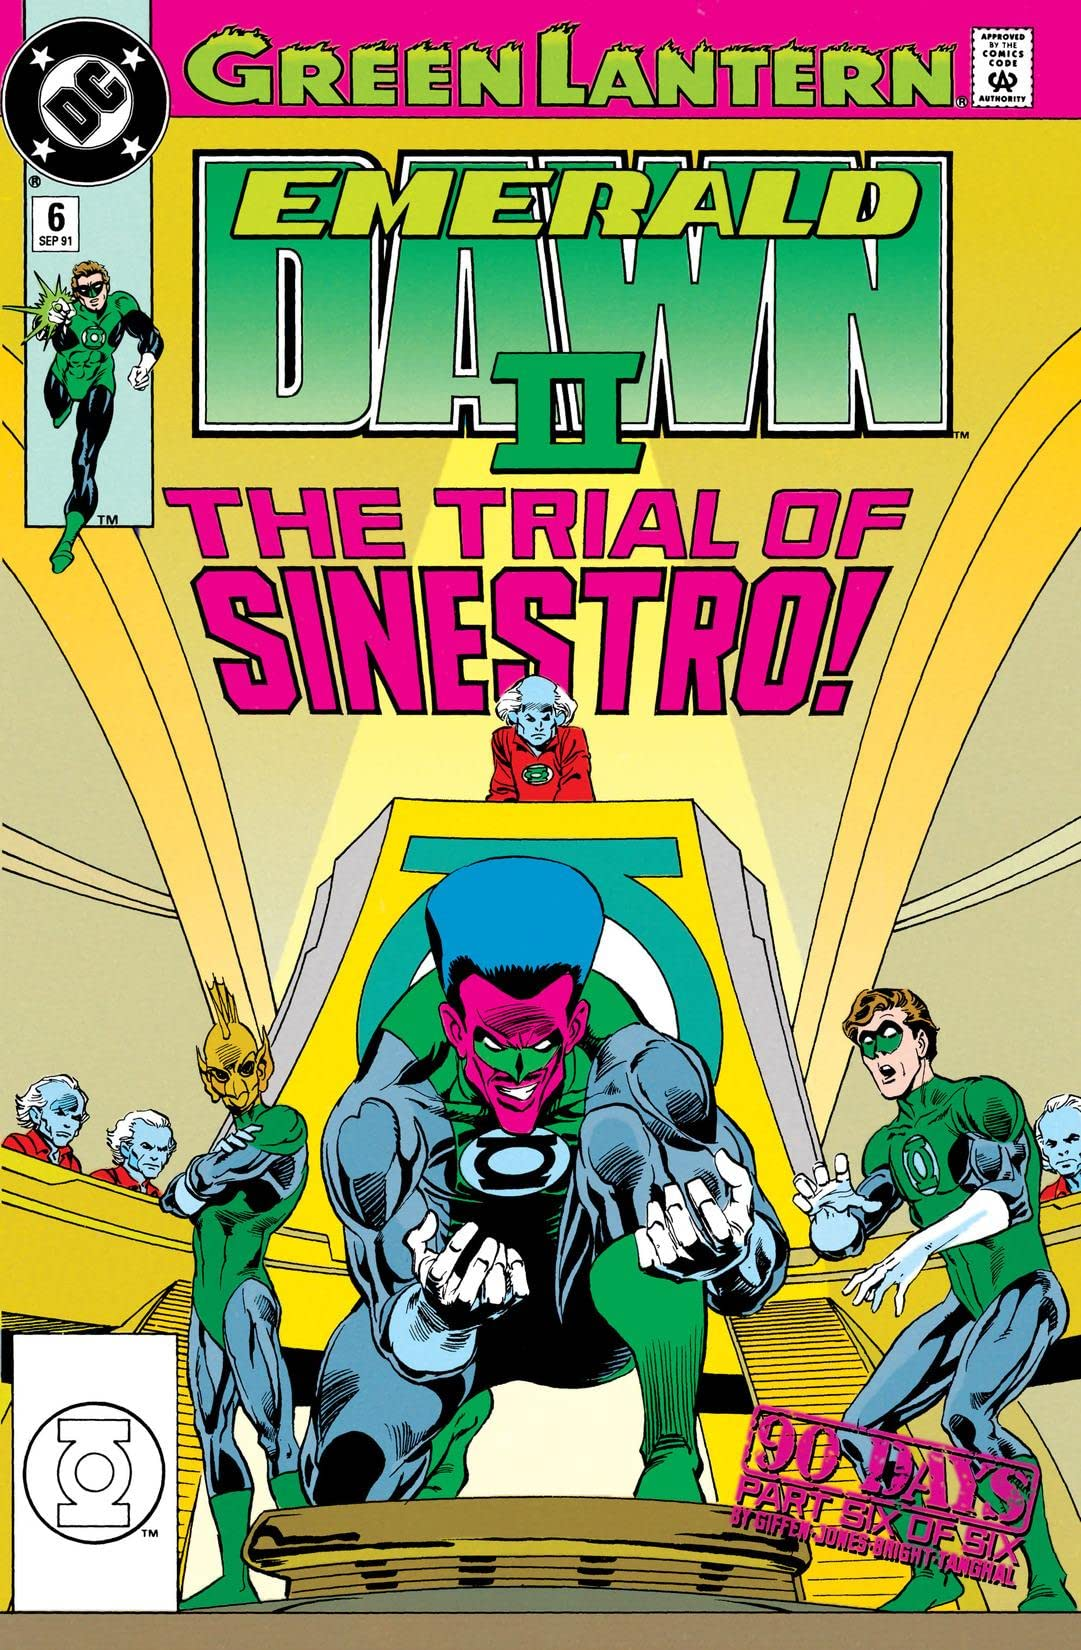 Green Lantern: Emerald Dawn II (1991) #6